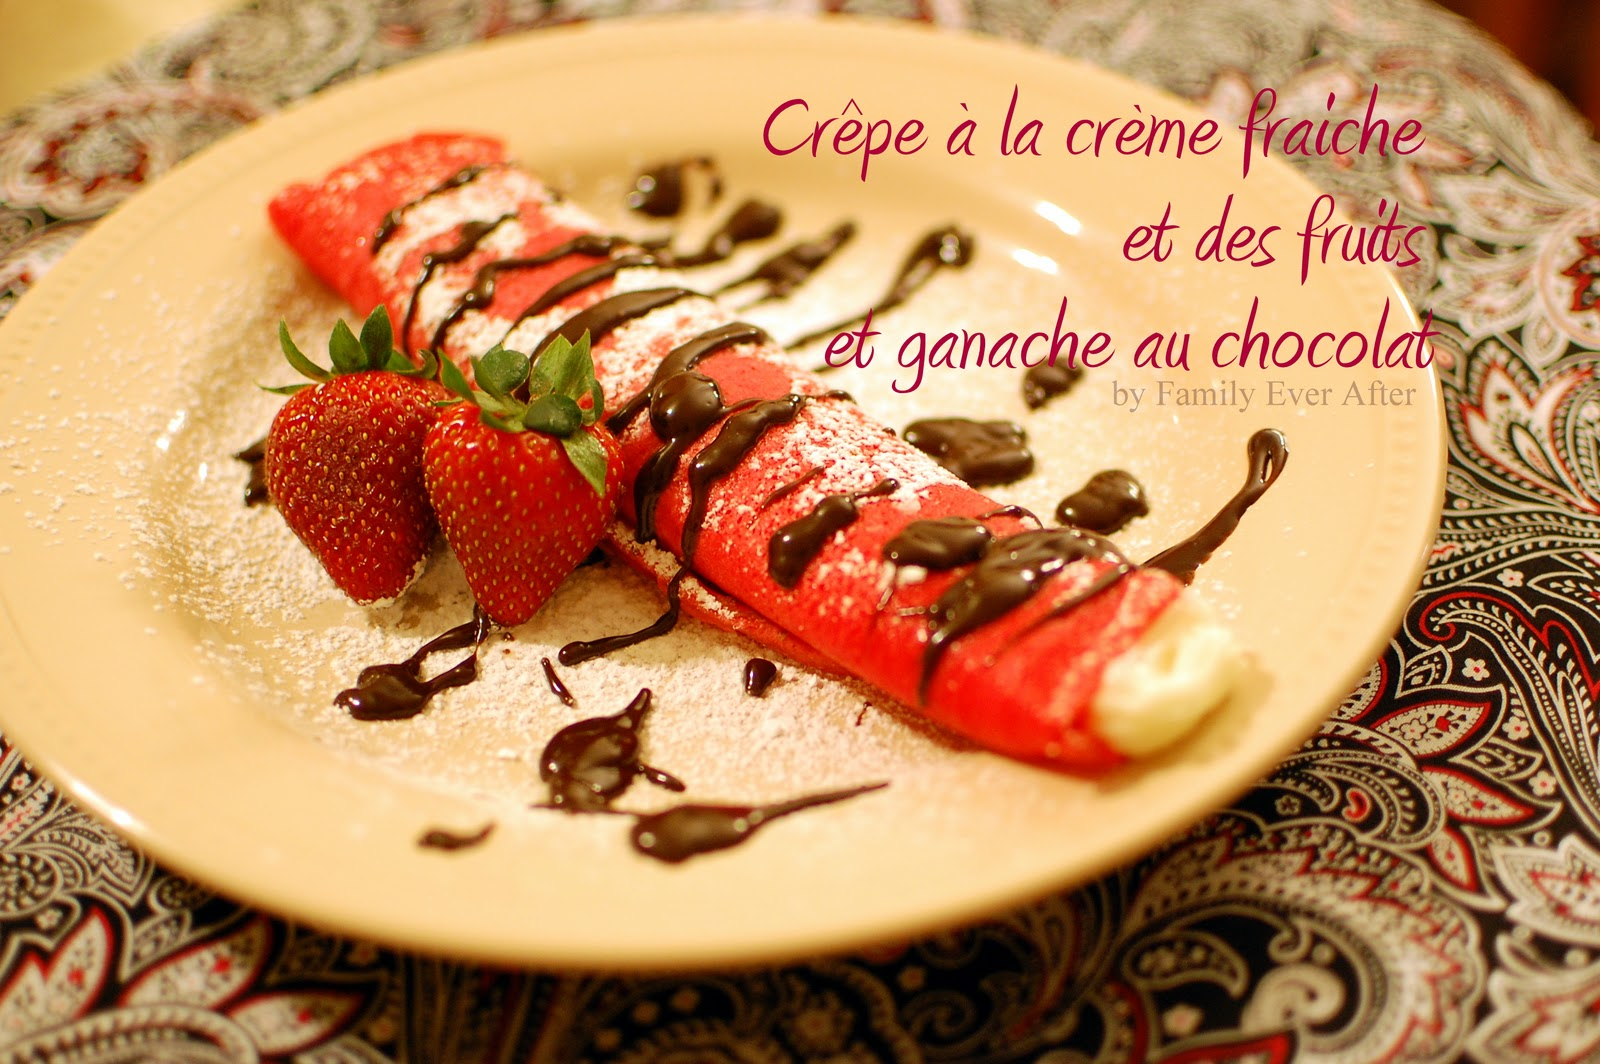 Family Ever After....: French Dessert Crepes for Valentine's Dessert